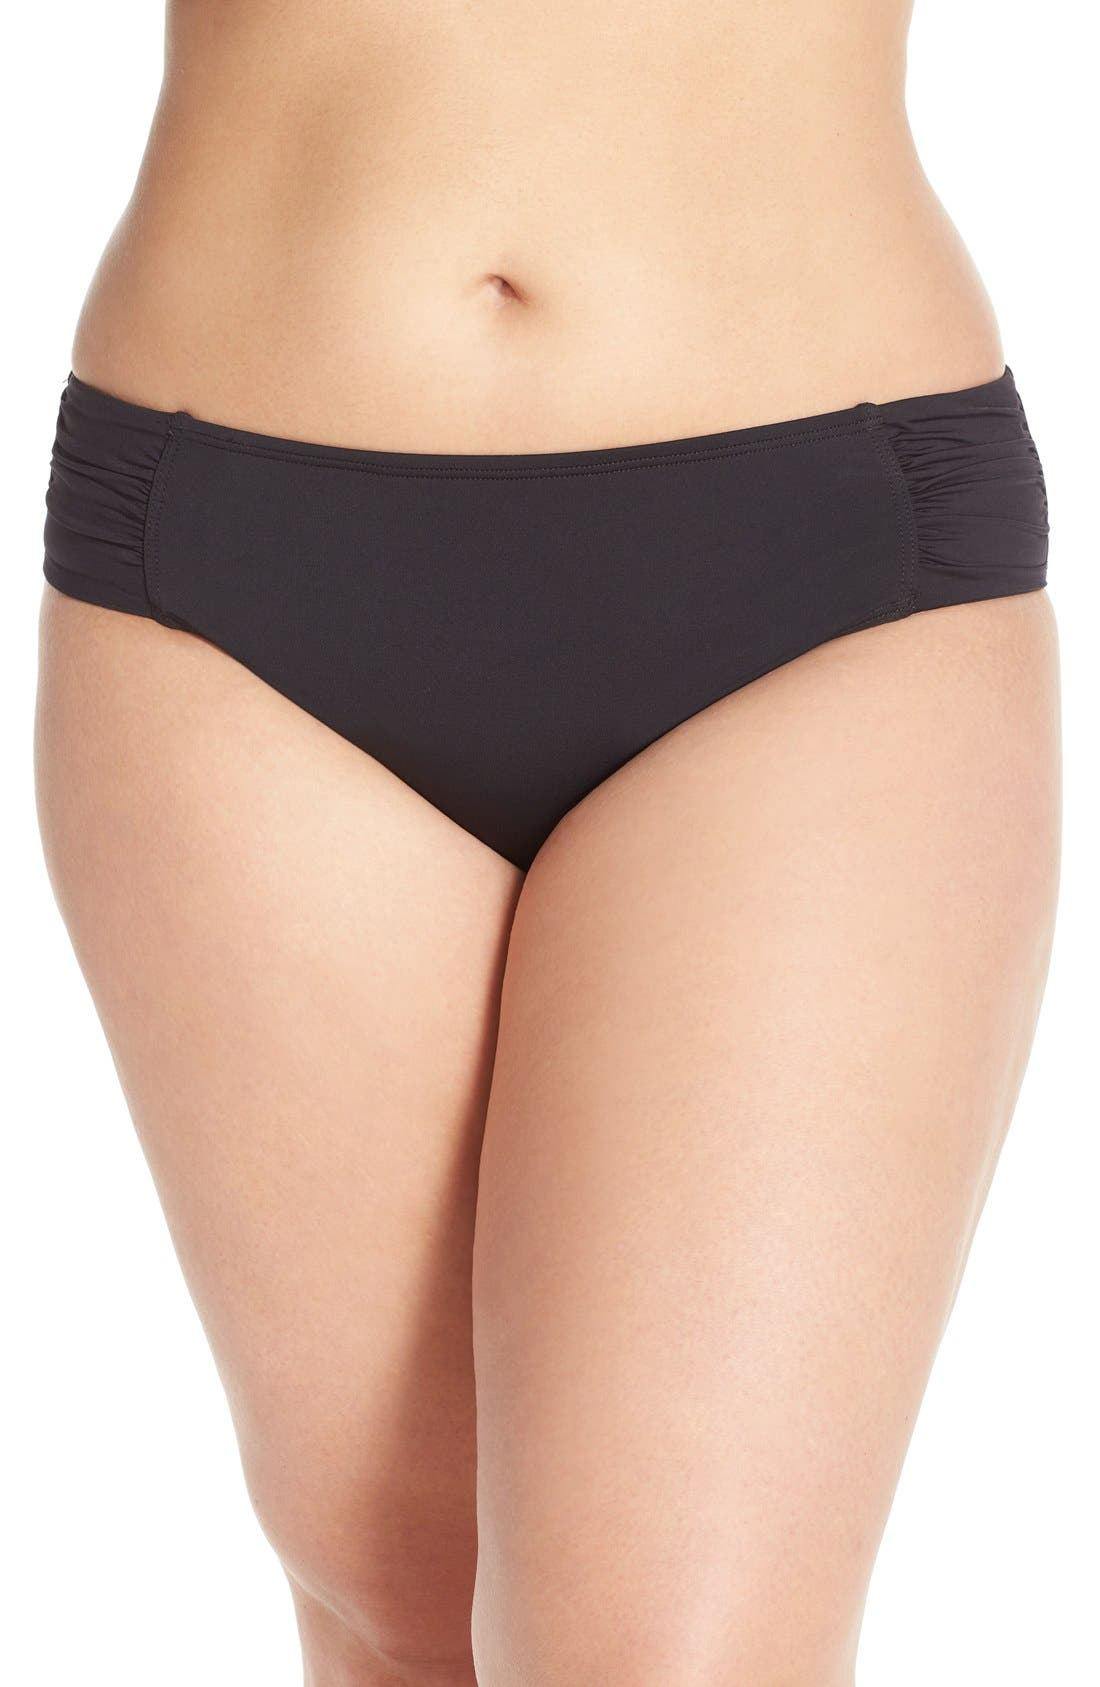 Main Image - Tommy Bahama 'Pearl' Bikini Bottoms (Plus Size) (Nordstrom Exclusive)